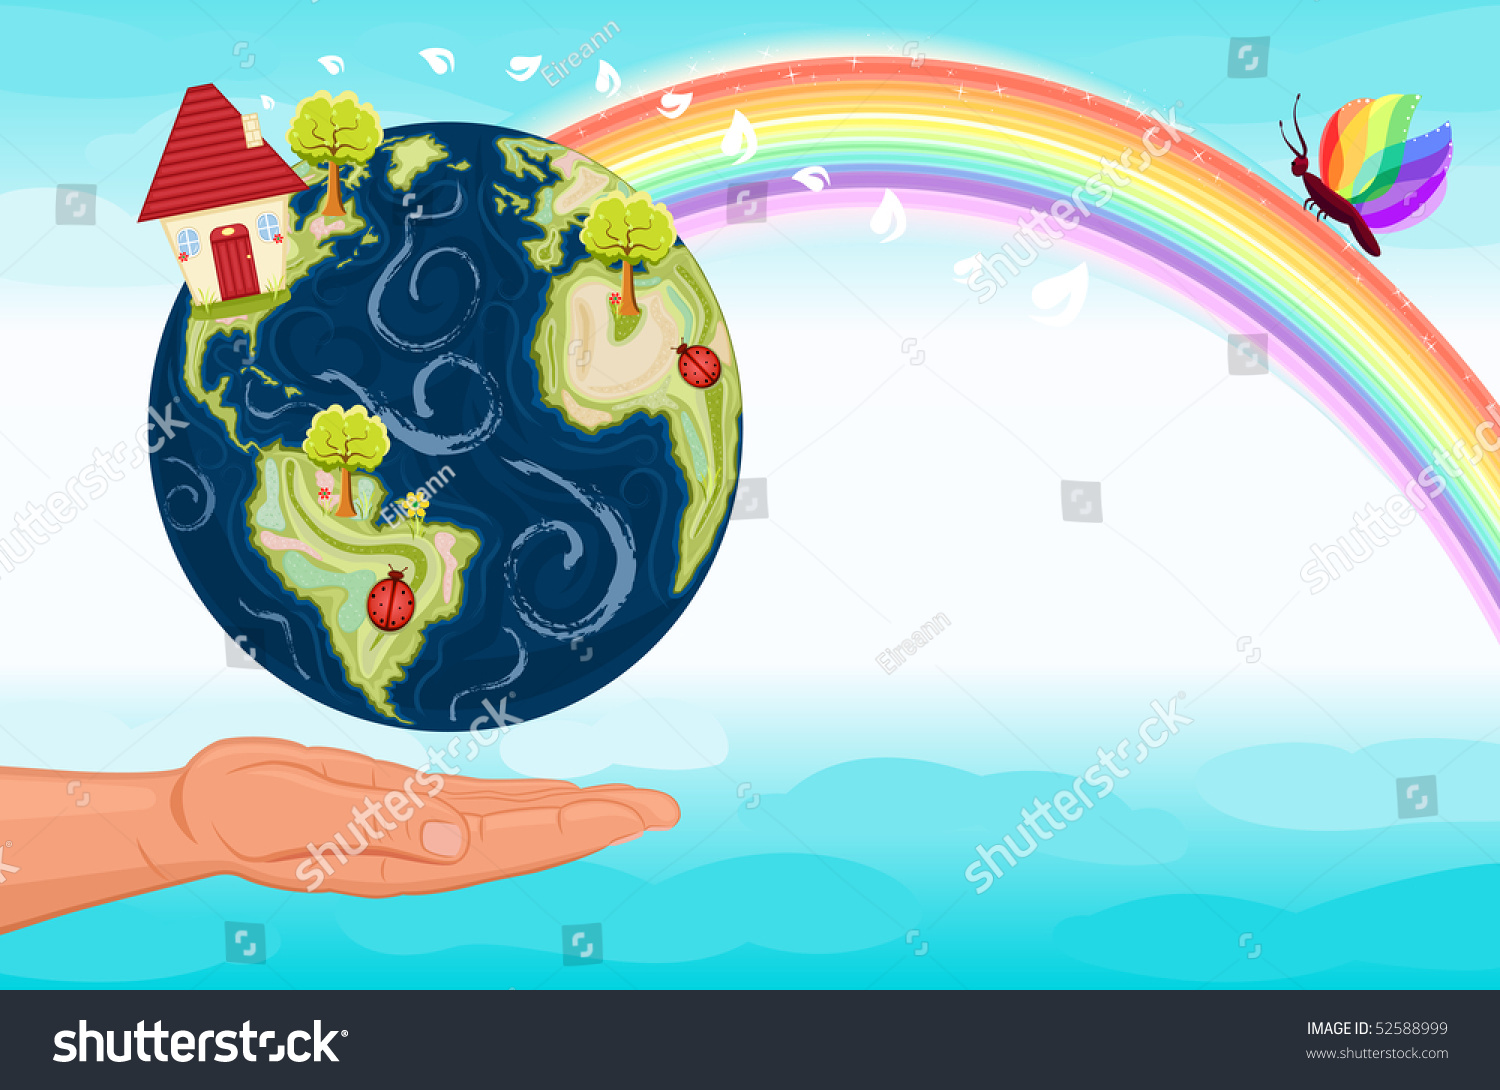 our beautiful planet earth essay 50 photos of our crazy beautiful planet to help you celebrate earth day to that end, we've put together a set of 50 crazy beautiful images of our crazy beautiful planet from the magnetic magnificence of the aurora borealis.